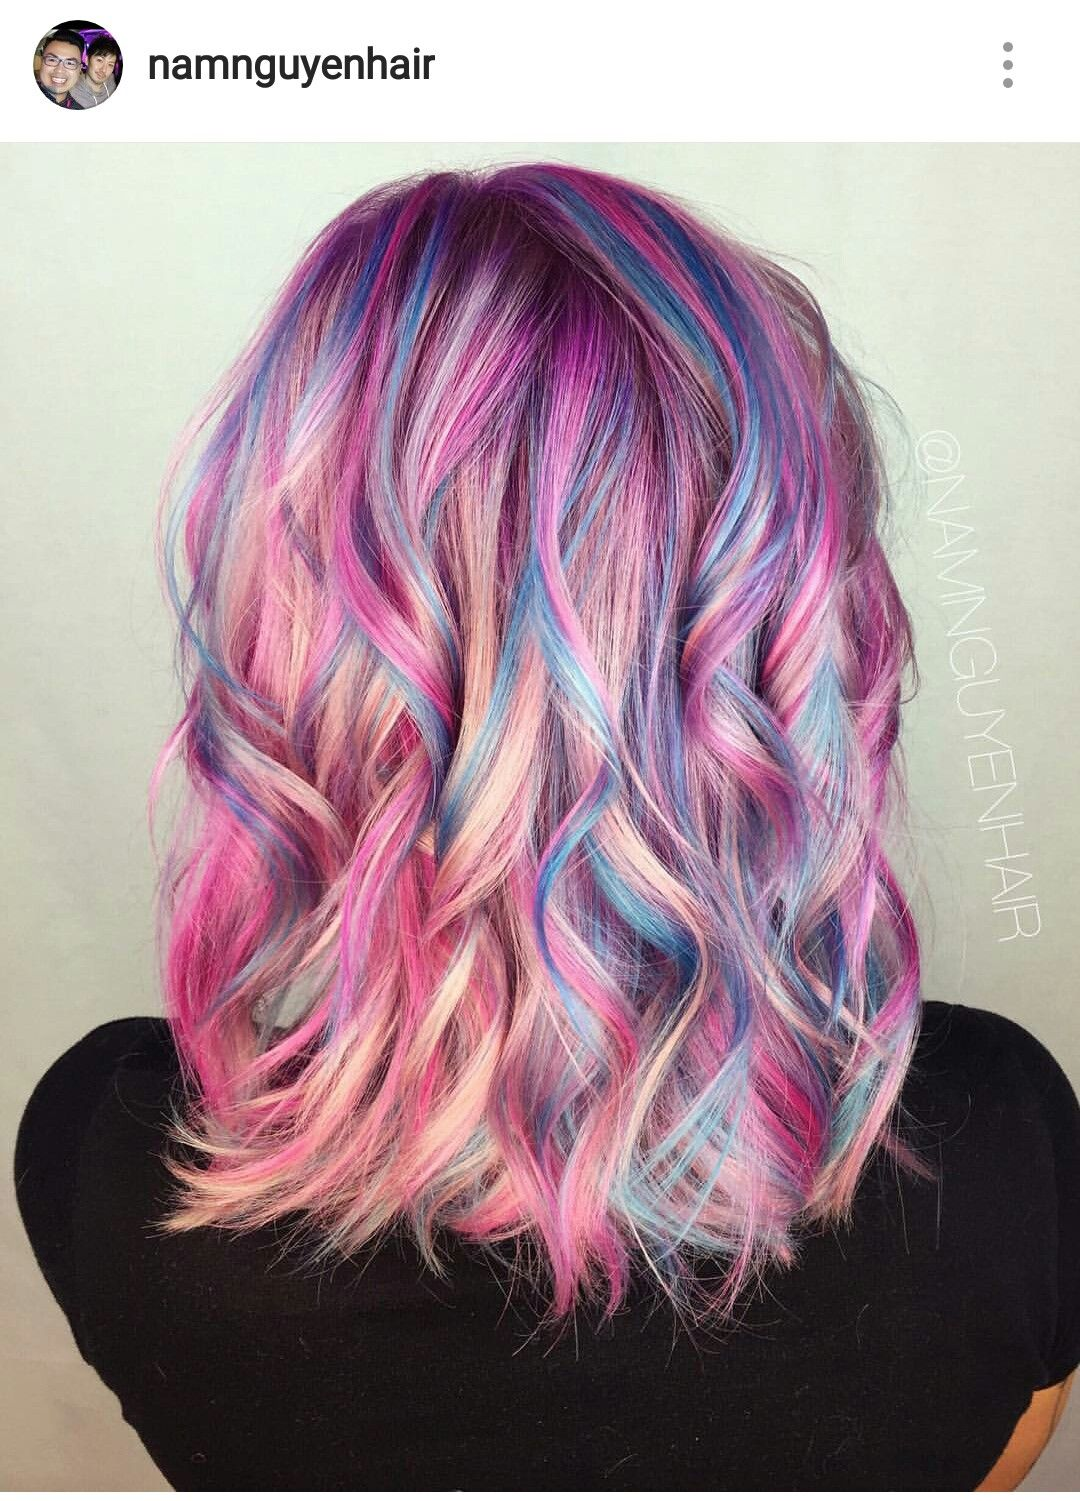 Pin By Dominique Arleane On Hair Unique Color Unicorn Hair Color Hair Styles Hair Color Pastel